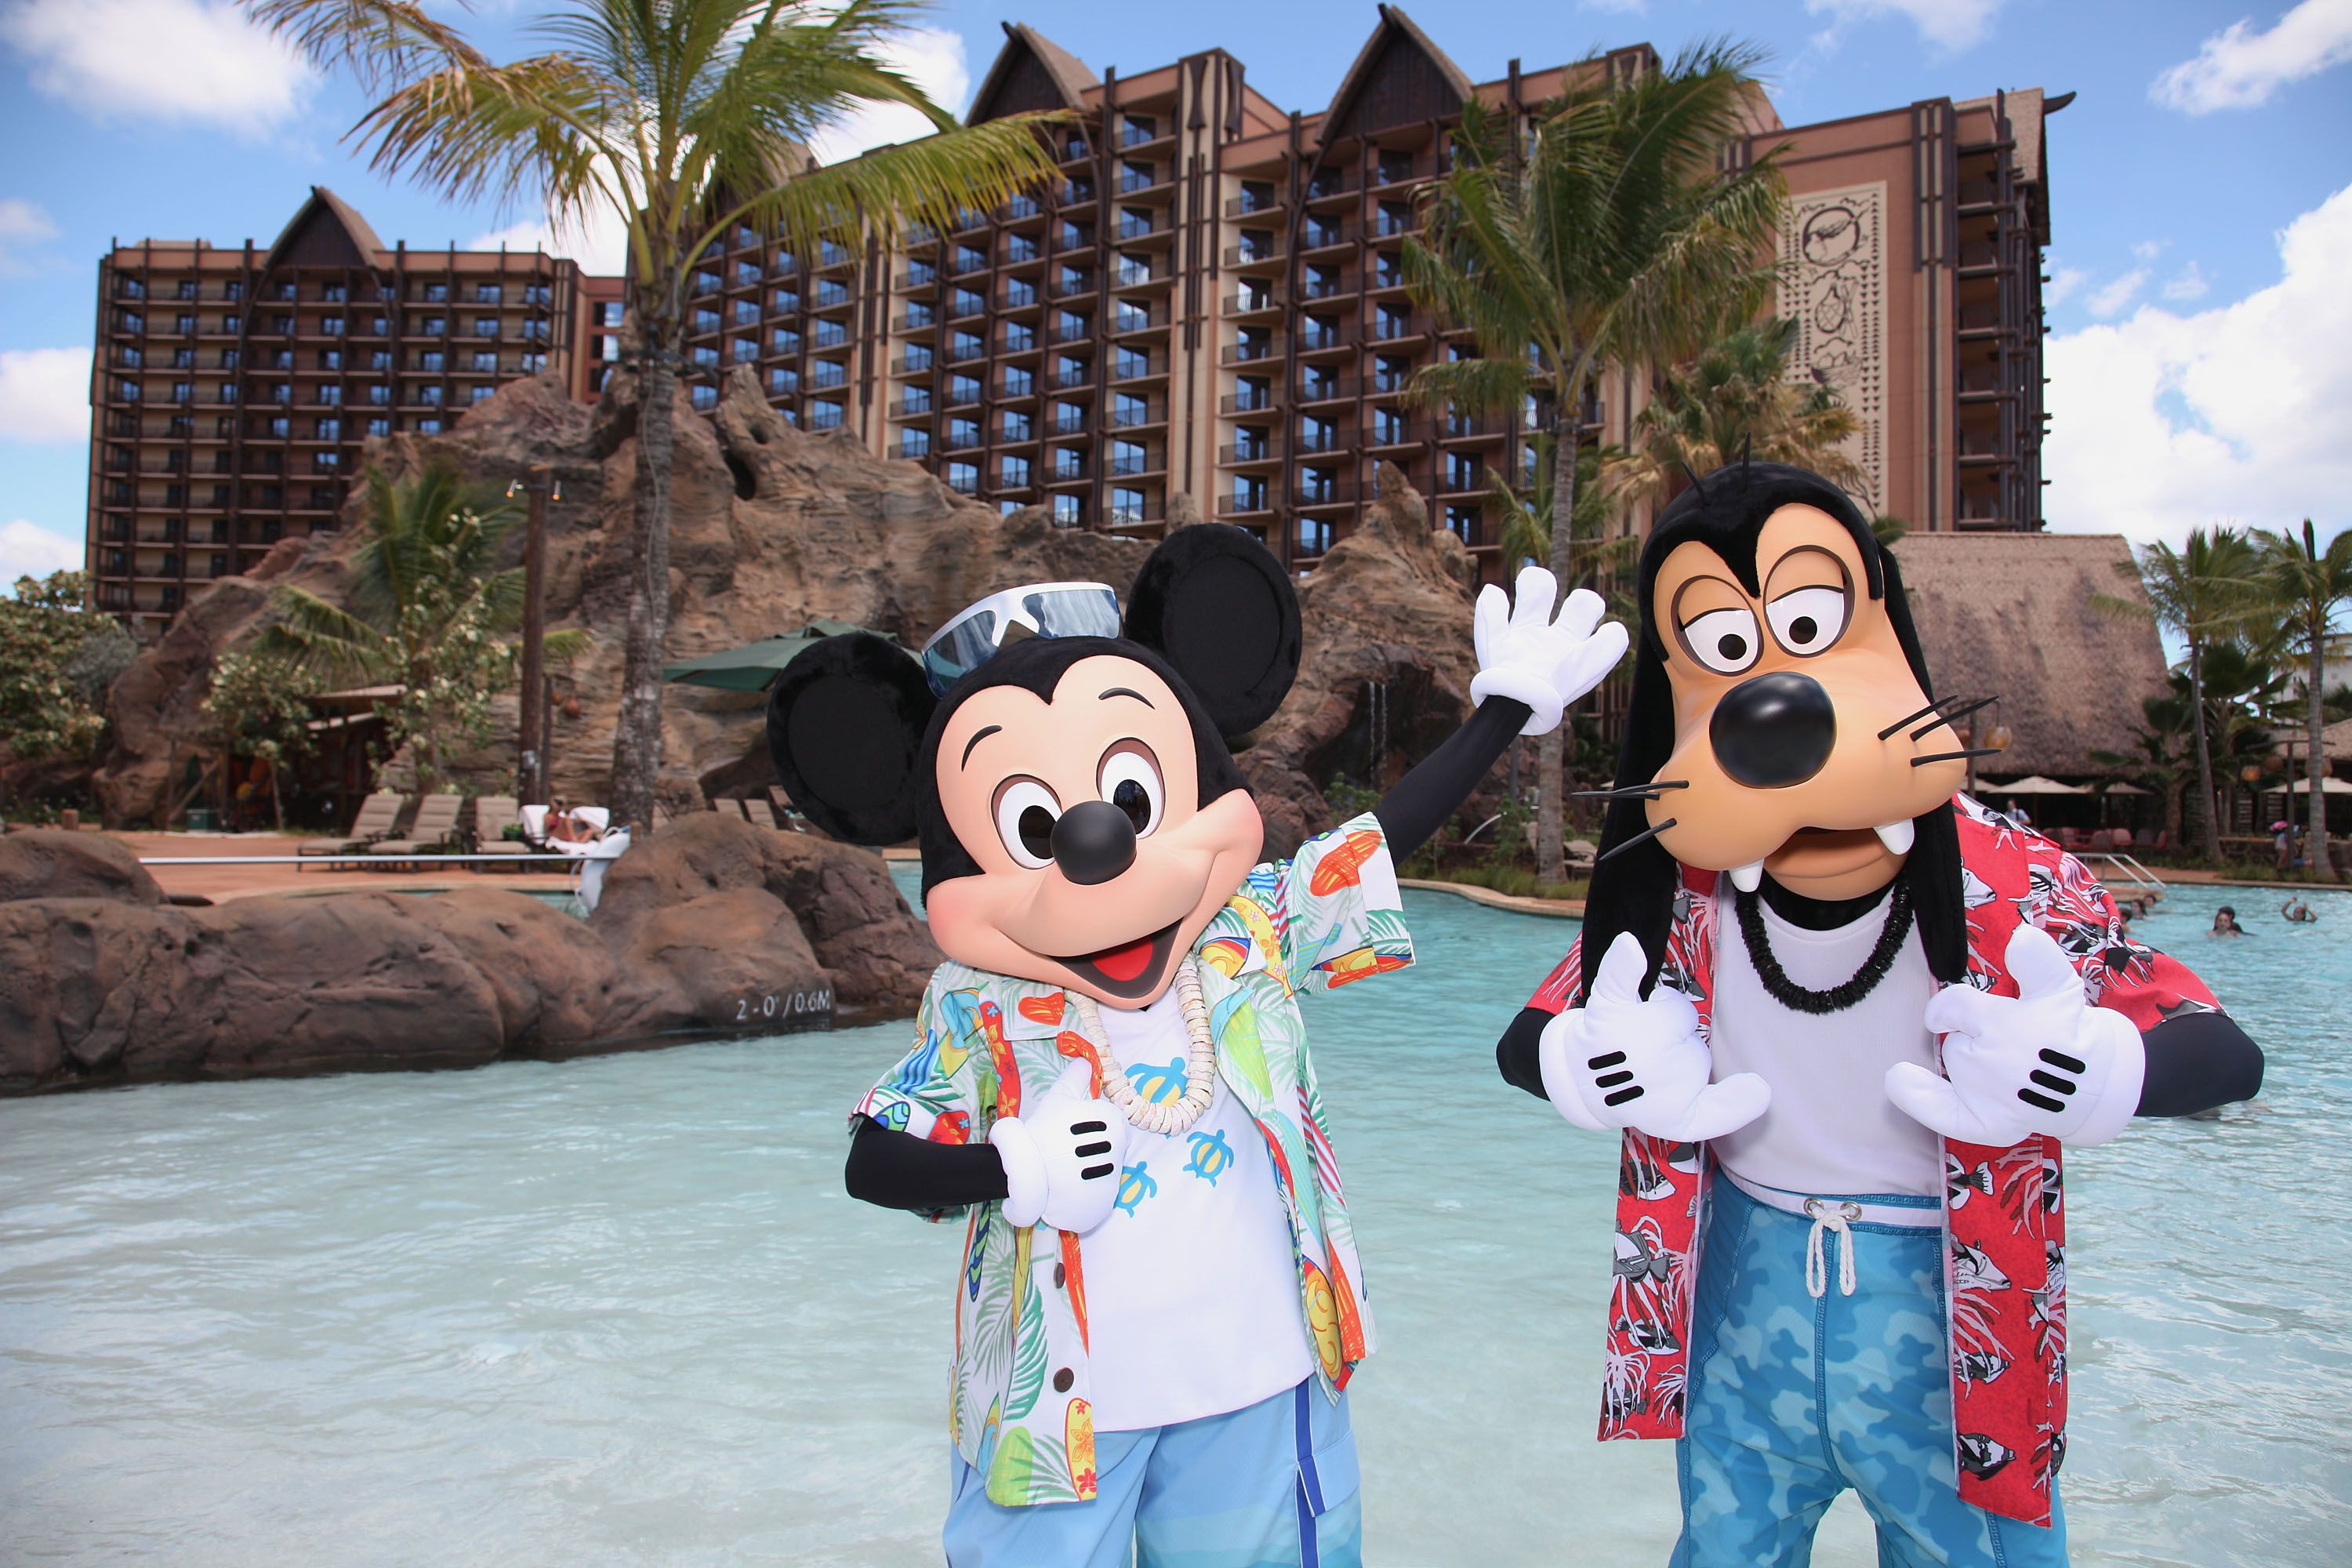 Mickey Mouse and Goofy at Aulani